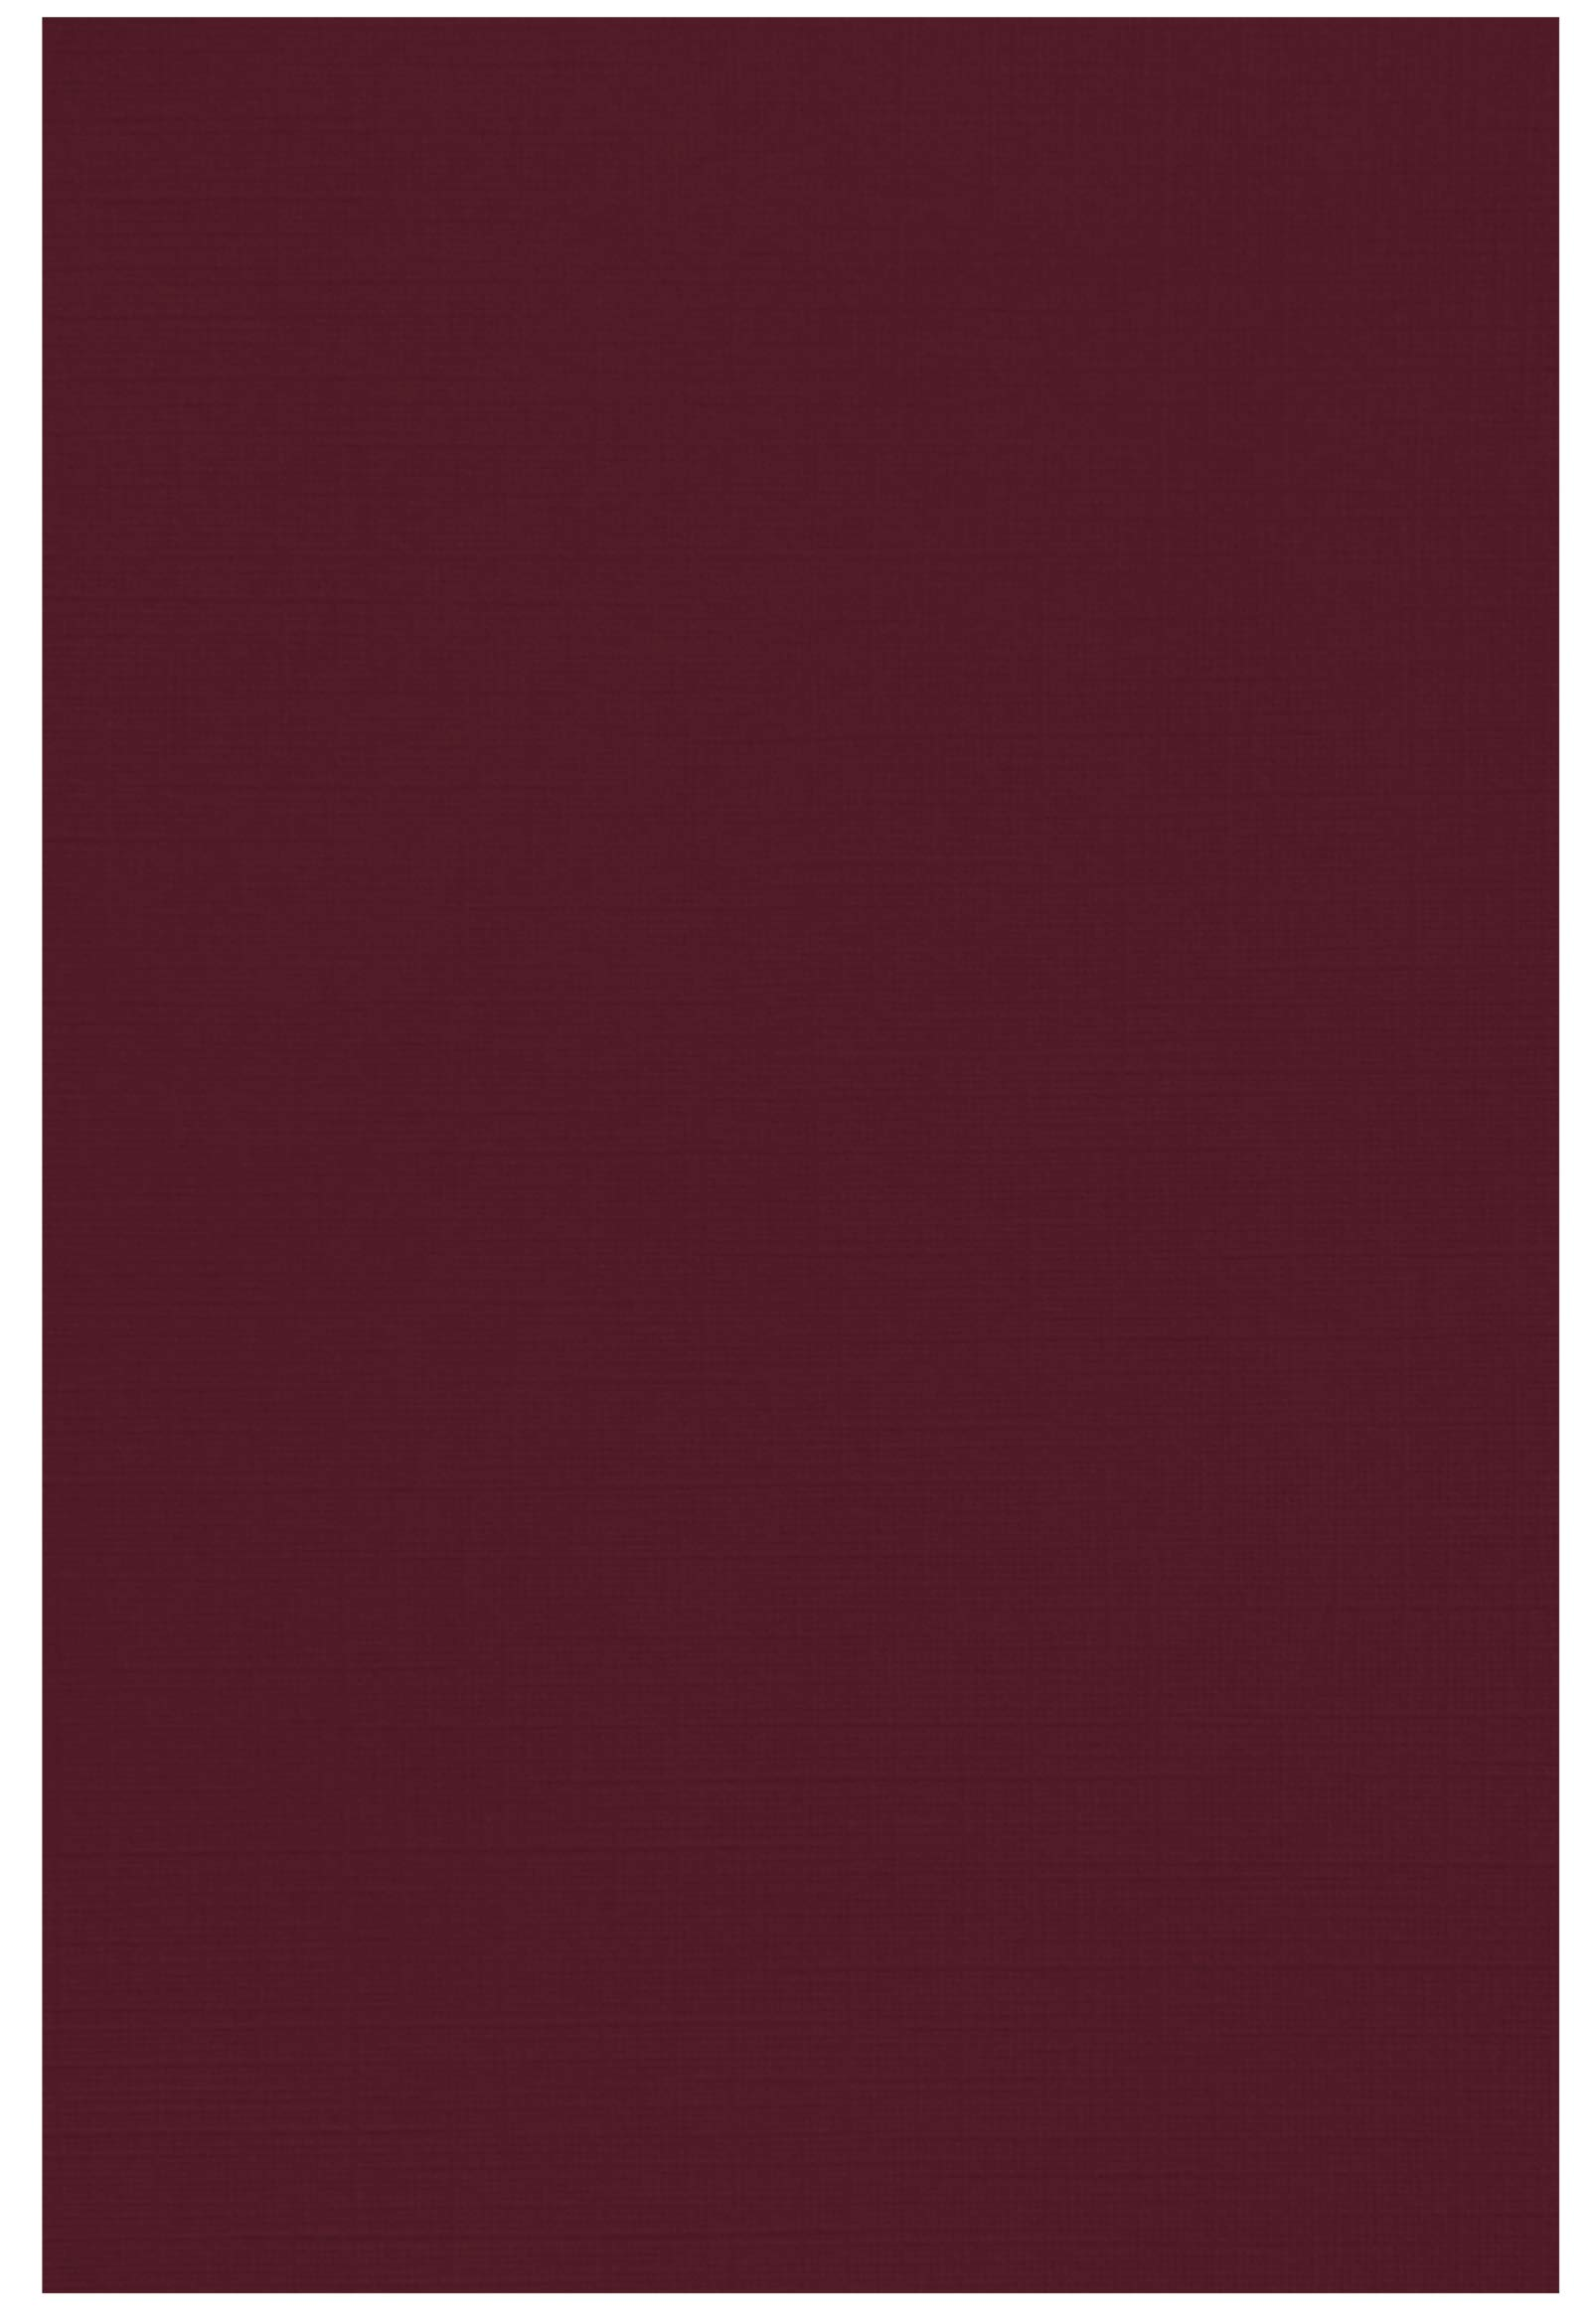 12 x 18 Cardstock - Burgundy Linen (50 Qty.) | Perfect for Holiday Crafting, Invitations, Scrapbooking, Cards and so much more! |1218-C-BGLI-50